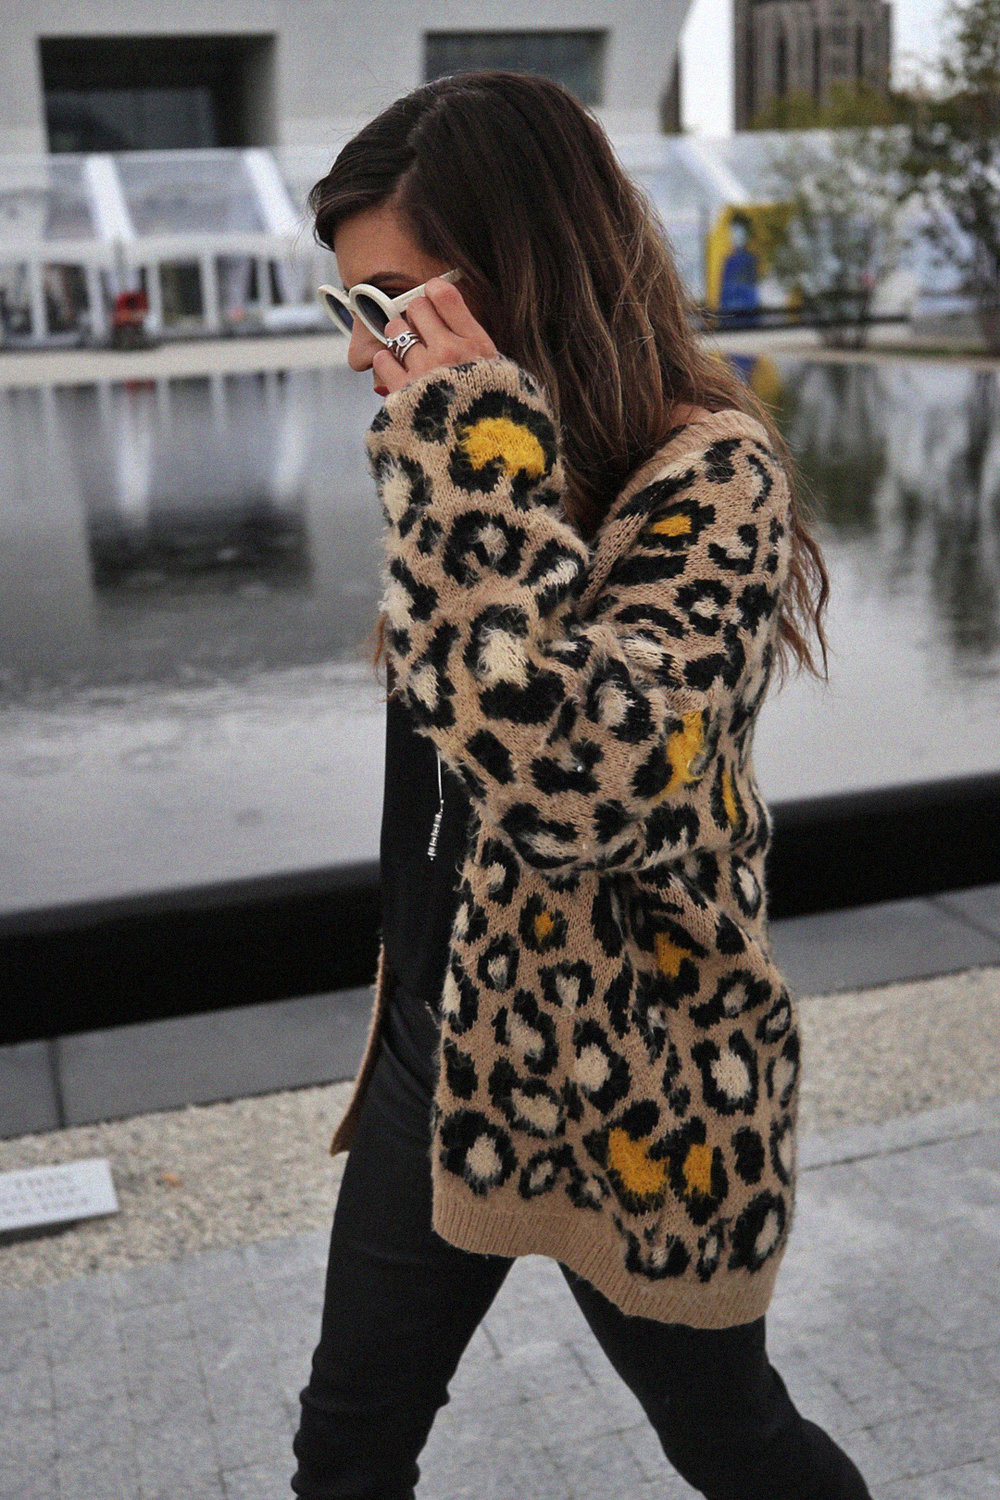 Fall 2018 street style - leopard print cardigan, Mackage leather pants, Cartel boots - Aga Khan Museum - photos by woahstyle.com_9713.jpg